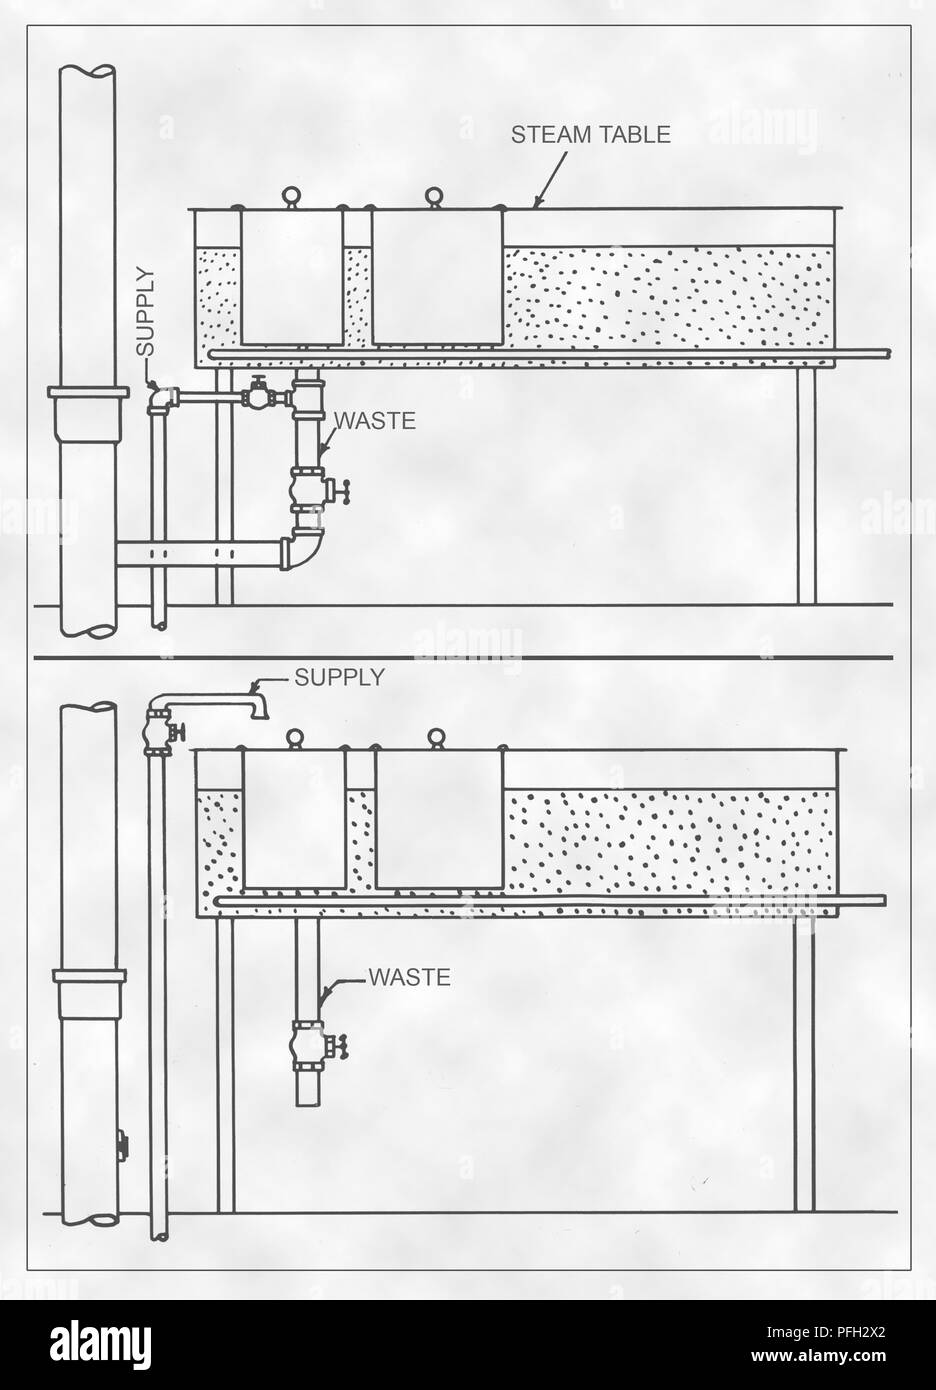 hight resolution of two possible plumbing configurations of a steam table plumbing interconnectivity digitally enhanced and colorized diagram 1936 image courtesy centers for